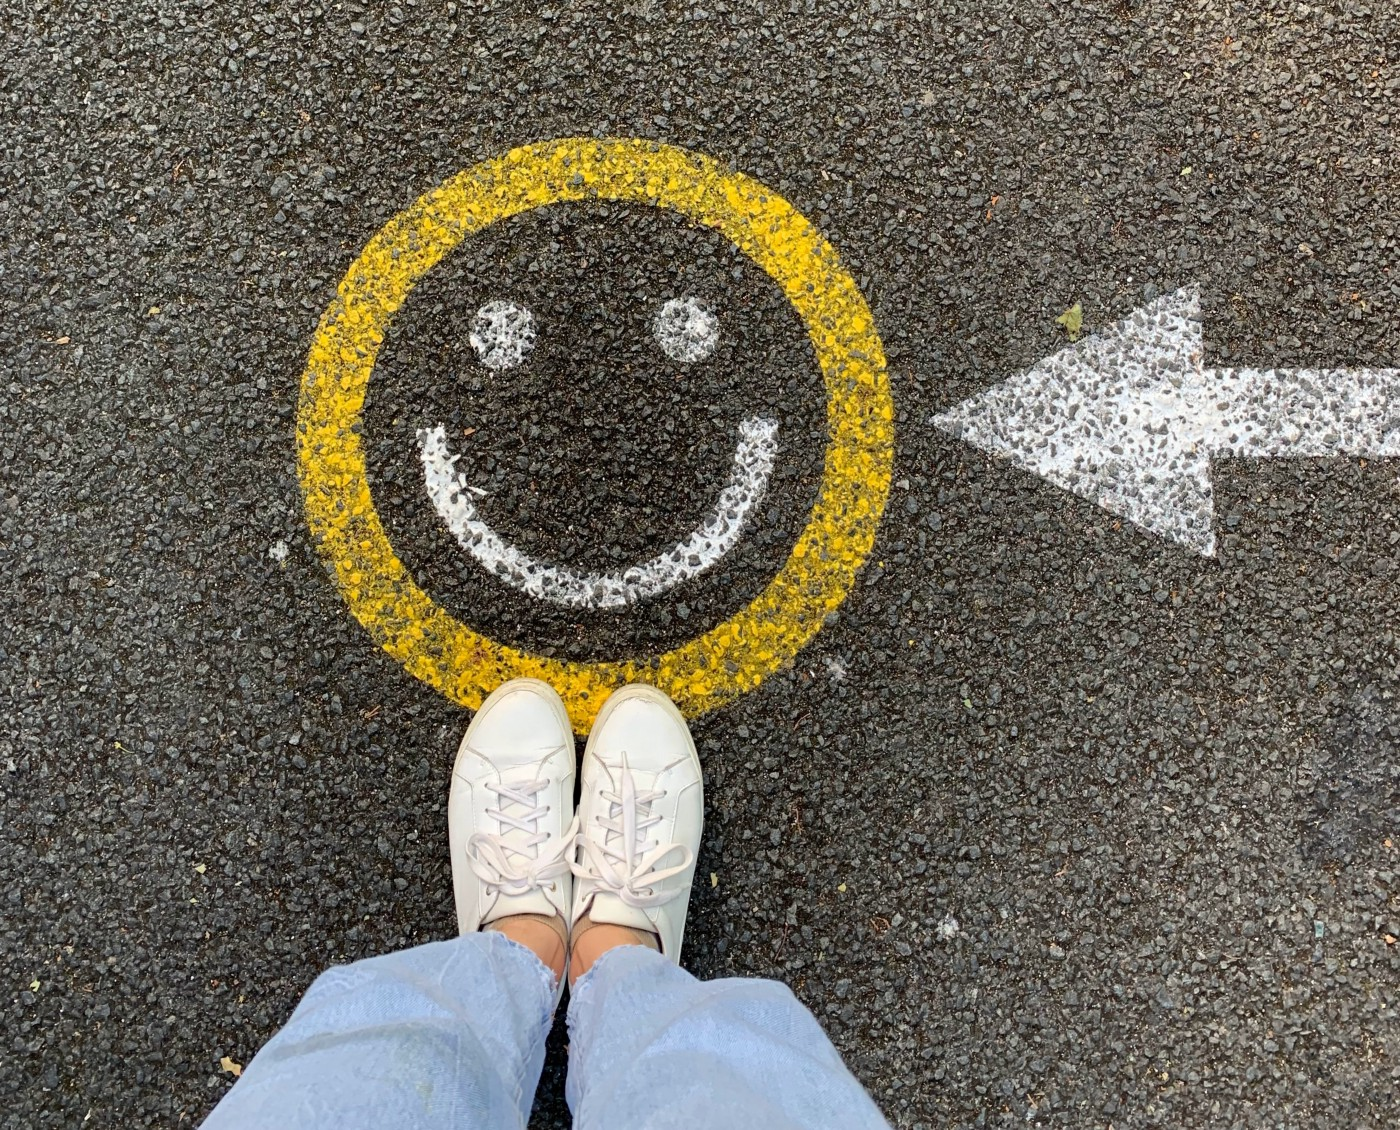 Person standing on a street with an arrow pointed to a painted yellow and white smiley face.